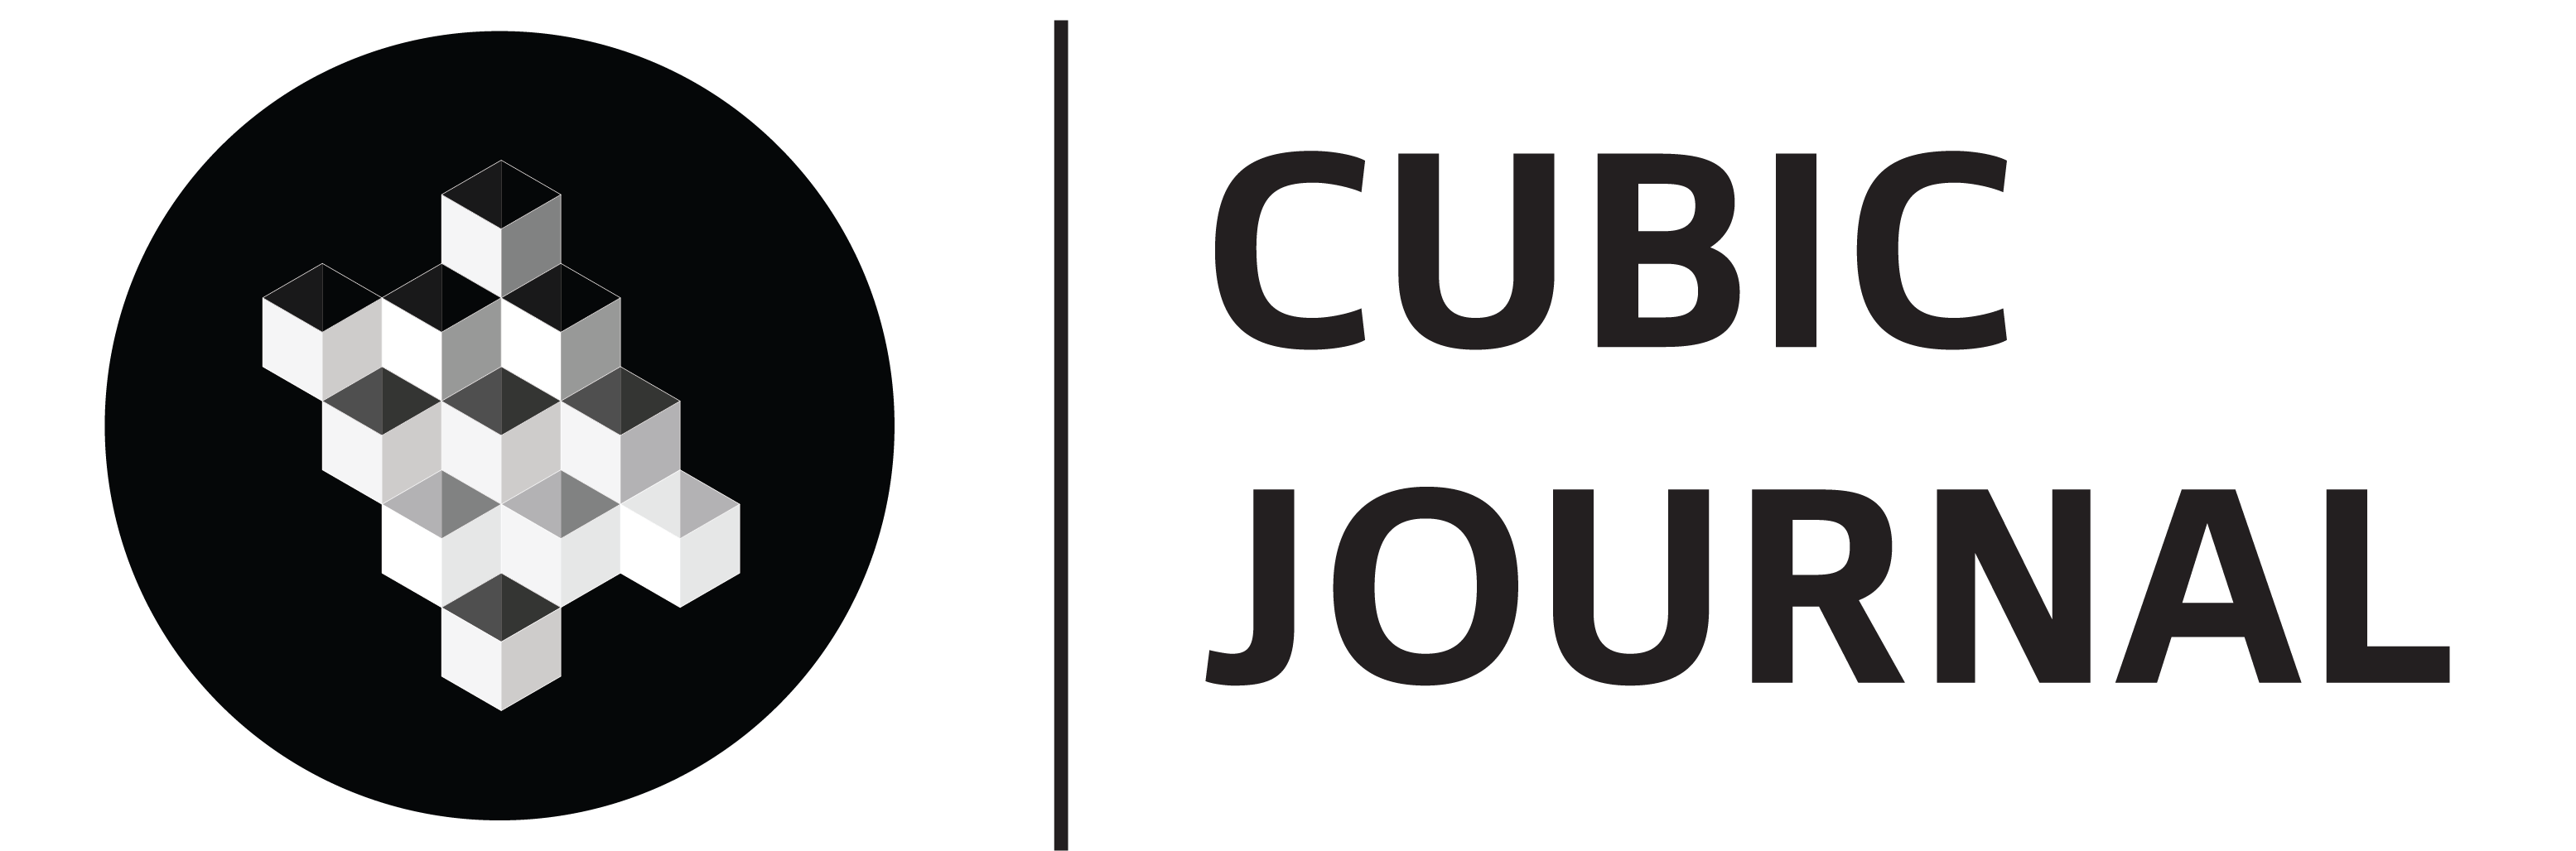 Cubic Journal logo